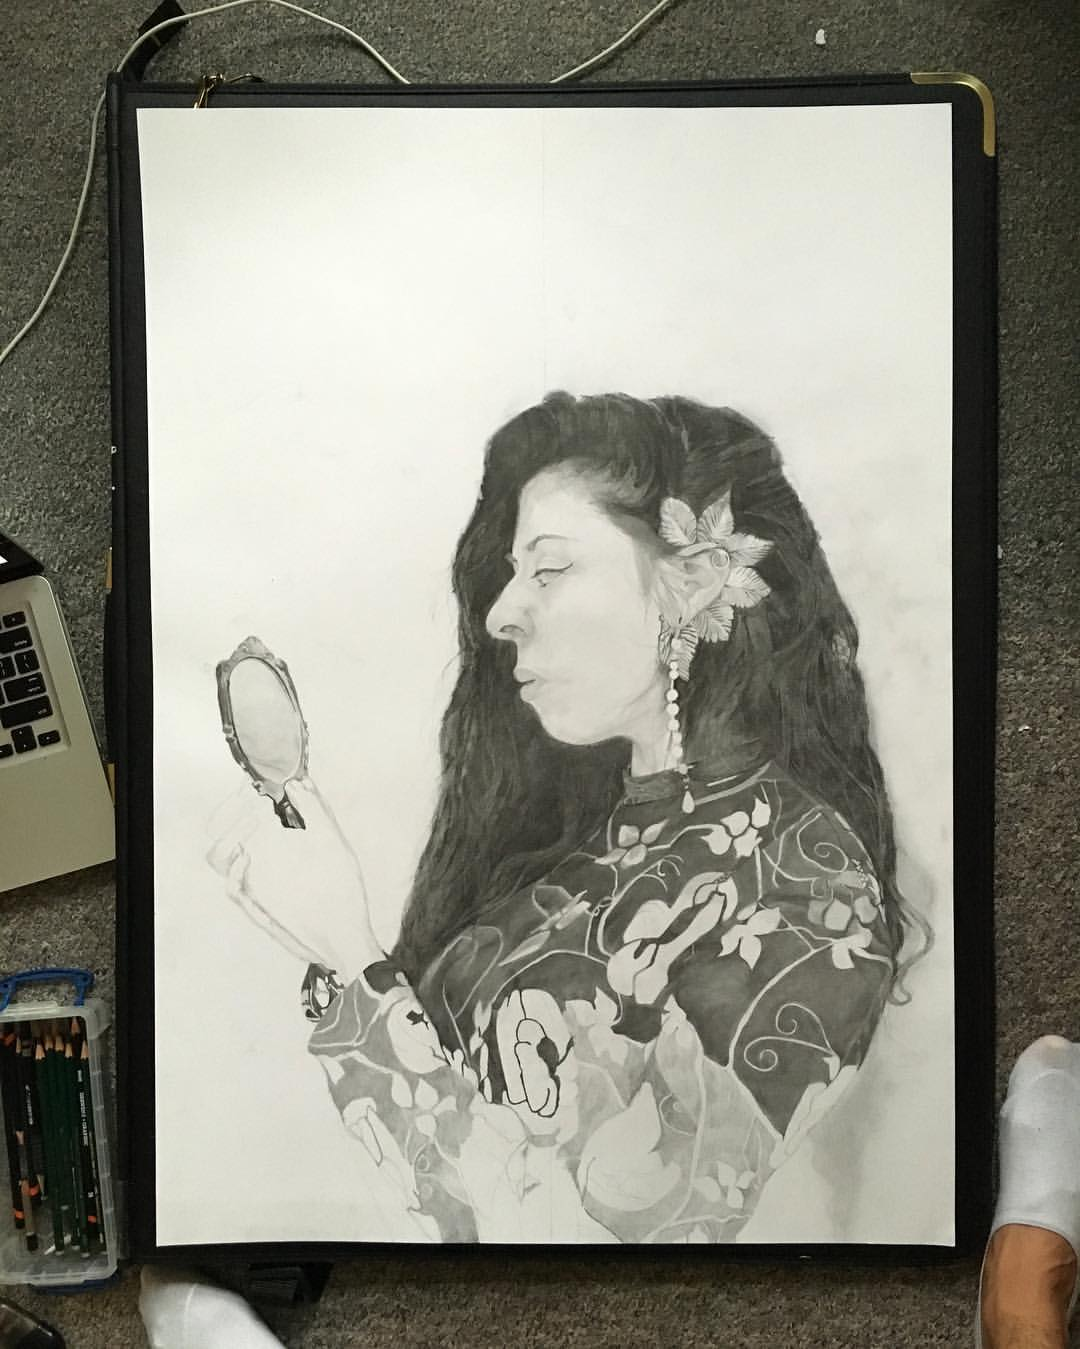 John Bingham's portrait in progress in black and white pencil of a woman with a floral jumper on, long wavy hair, a flower behind her ear and looking into a small elaborate mirror